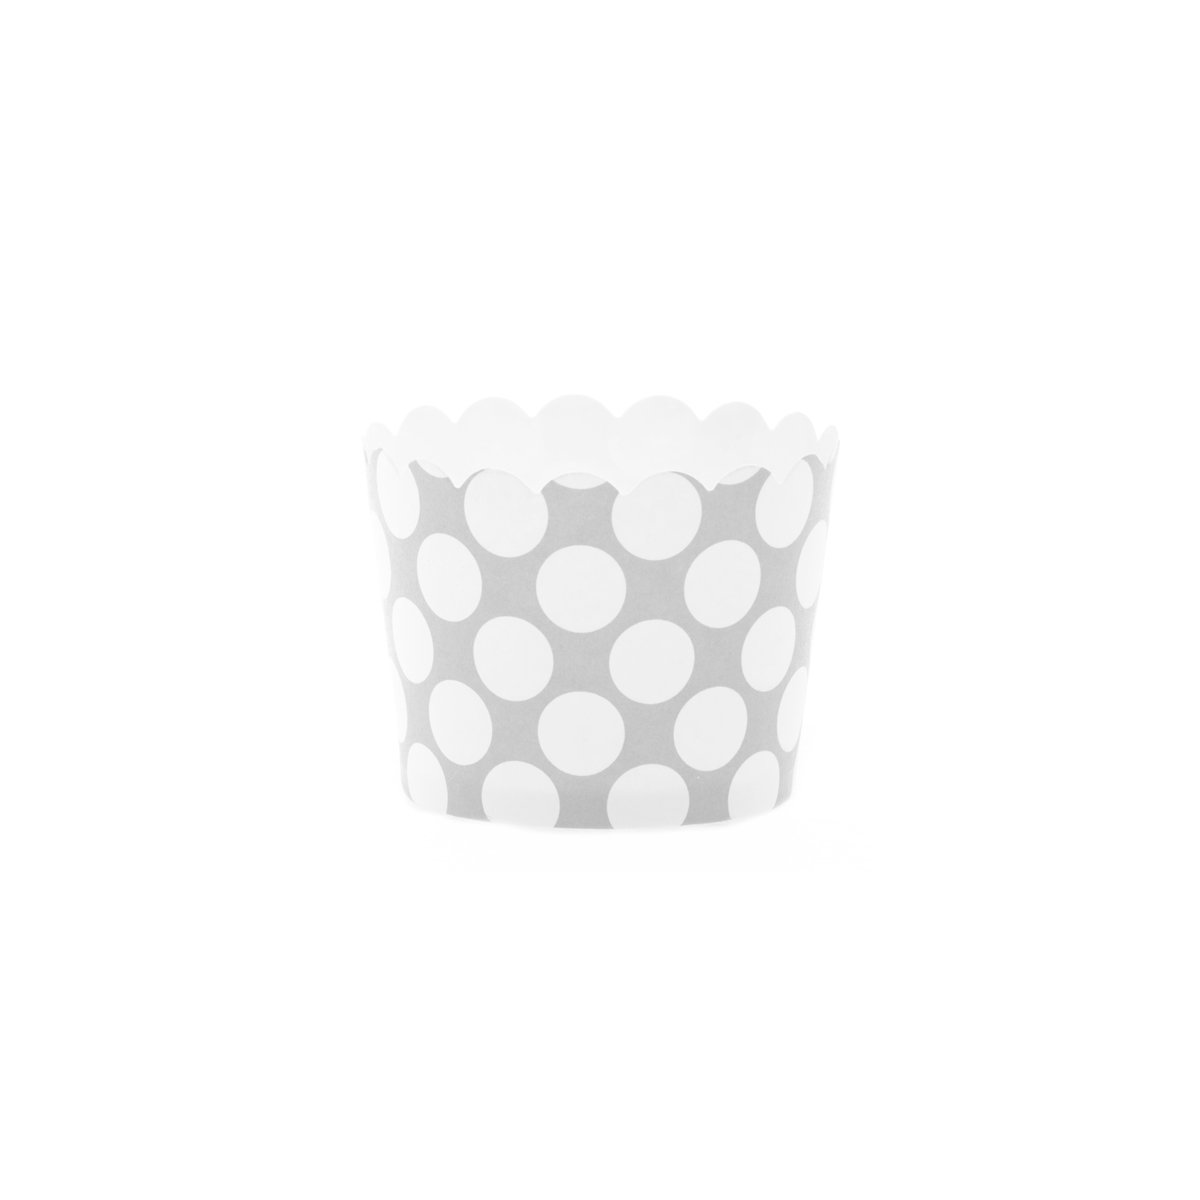 Simply Baked Small Paper Baking Cup, Birch Faux Wood, 550 Pack, Disposable & Oven-Safe